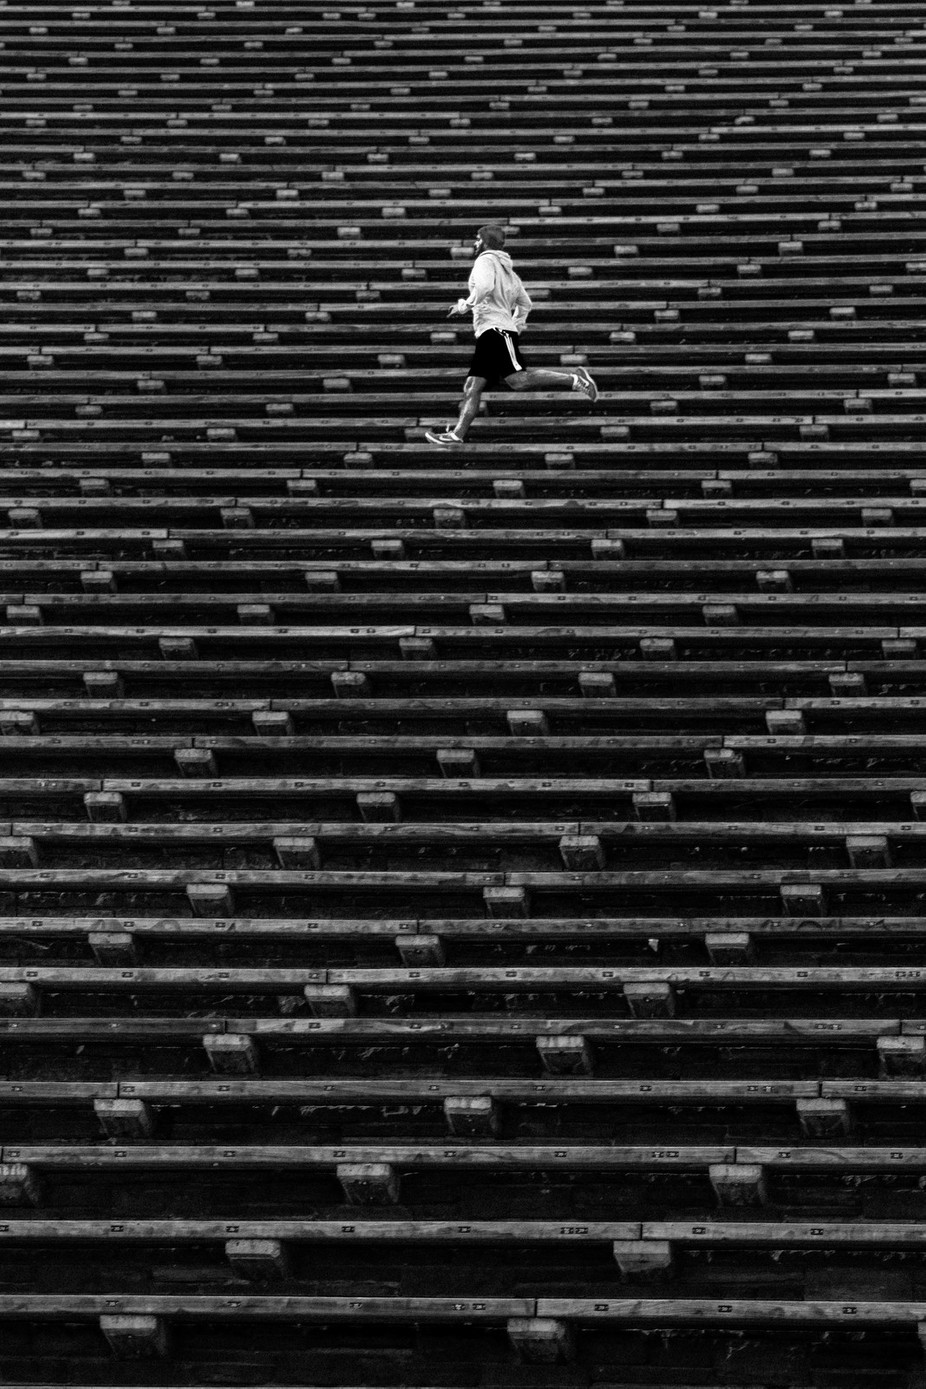 The Stair Master by KuriousG_12 - Diagonals And Composition Photo Contest